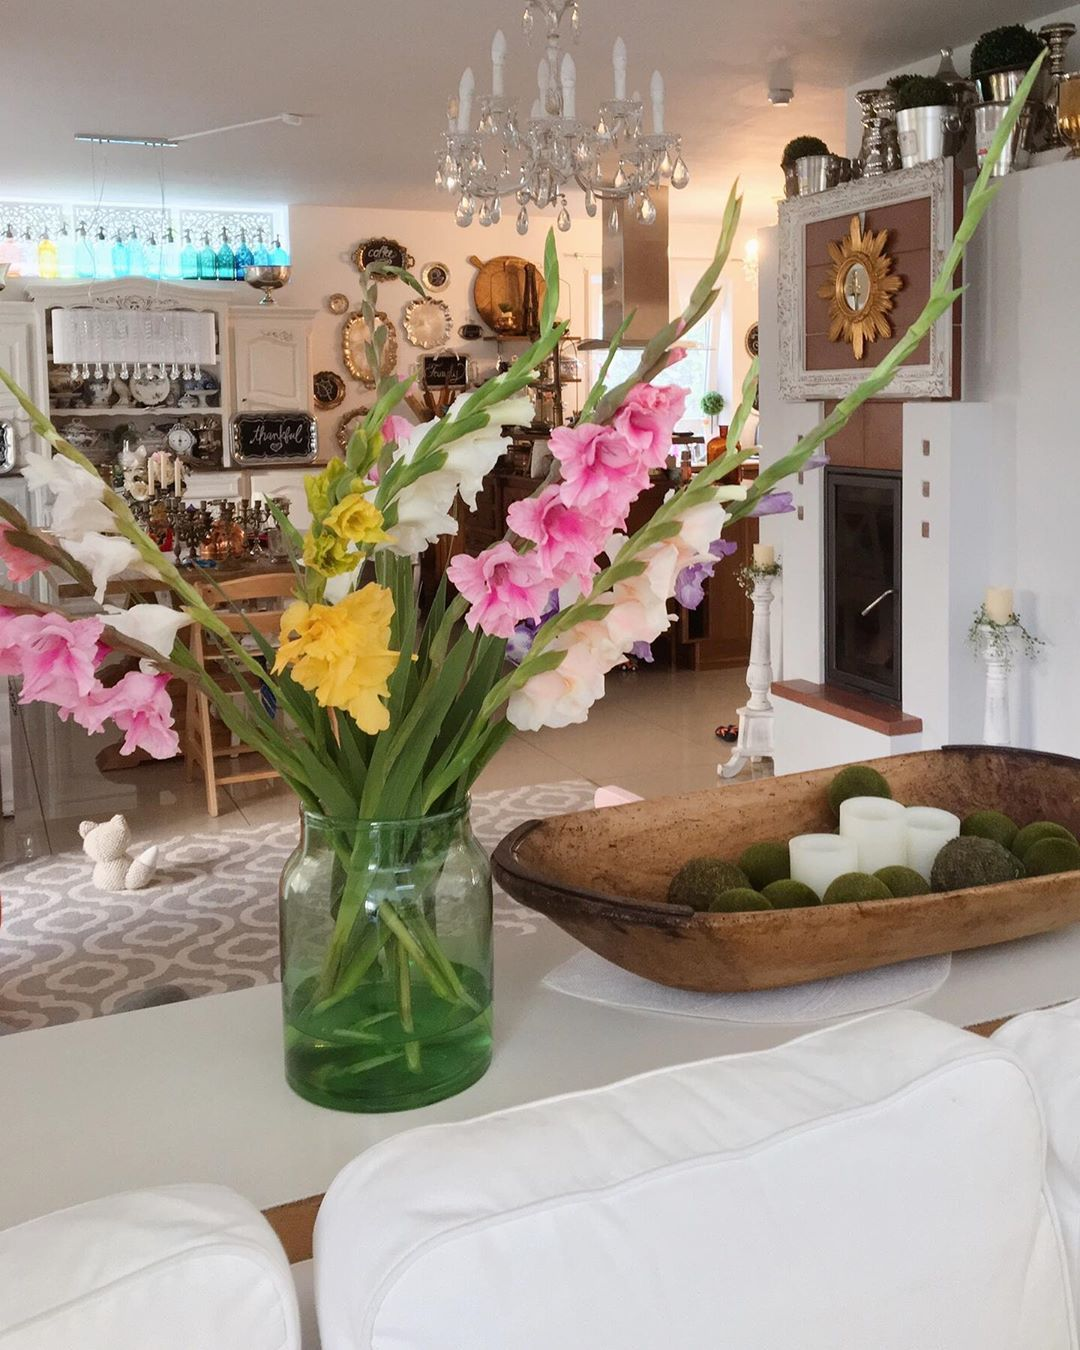 Happy Sunday evening everyone! 🌸🌿 The gladiola really brighten up the living room! 🌼 .